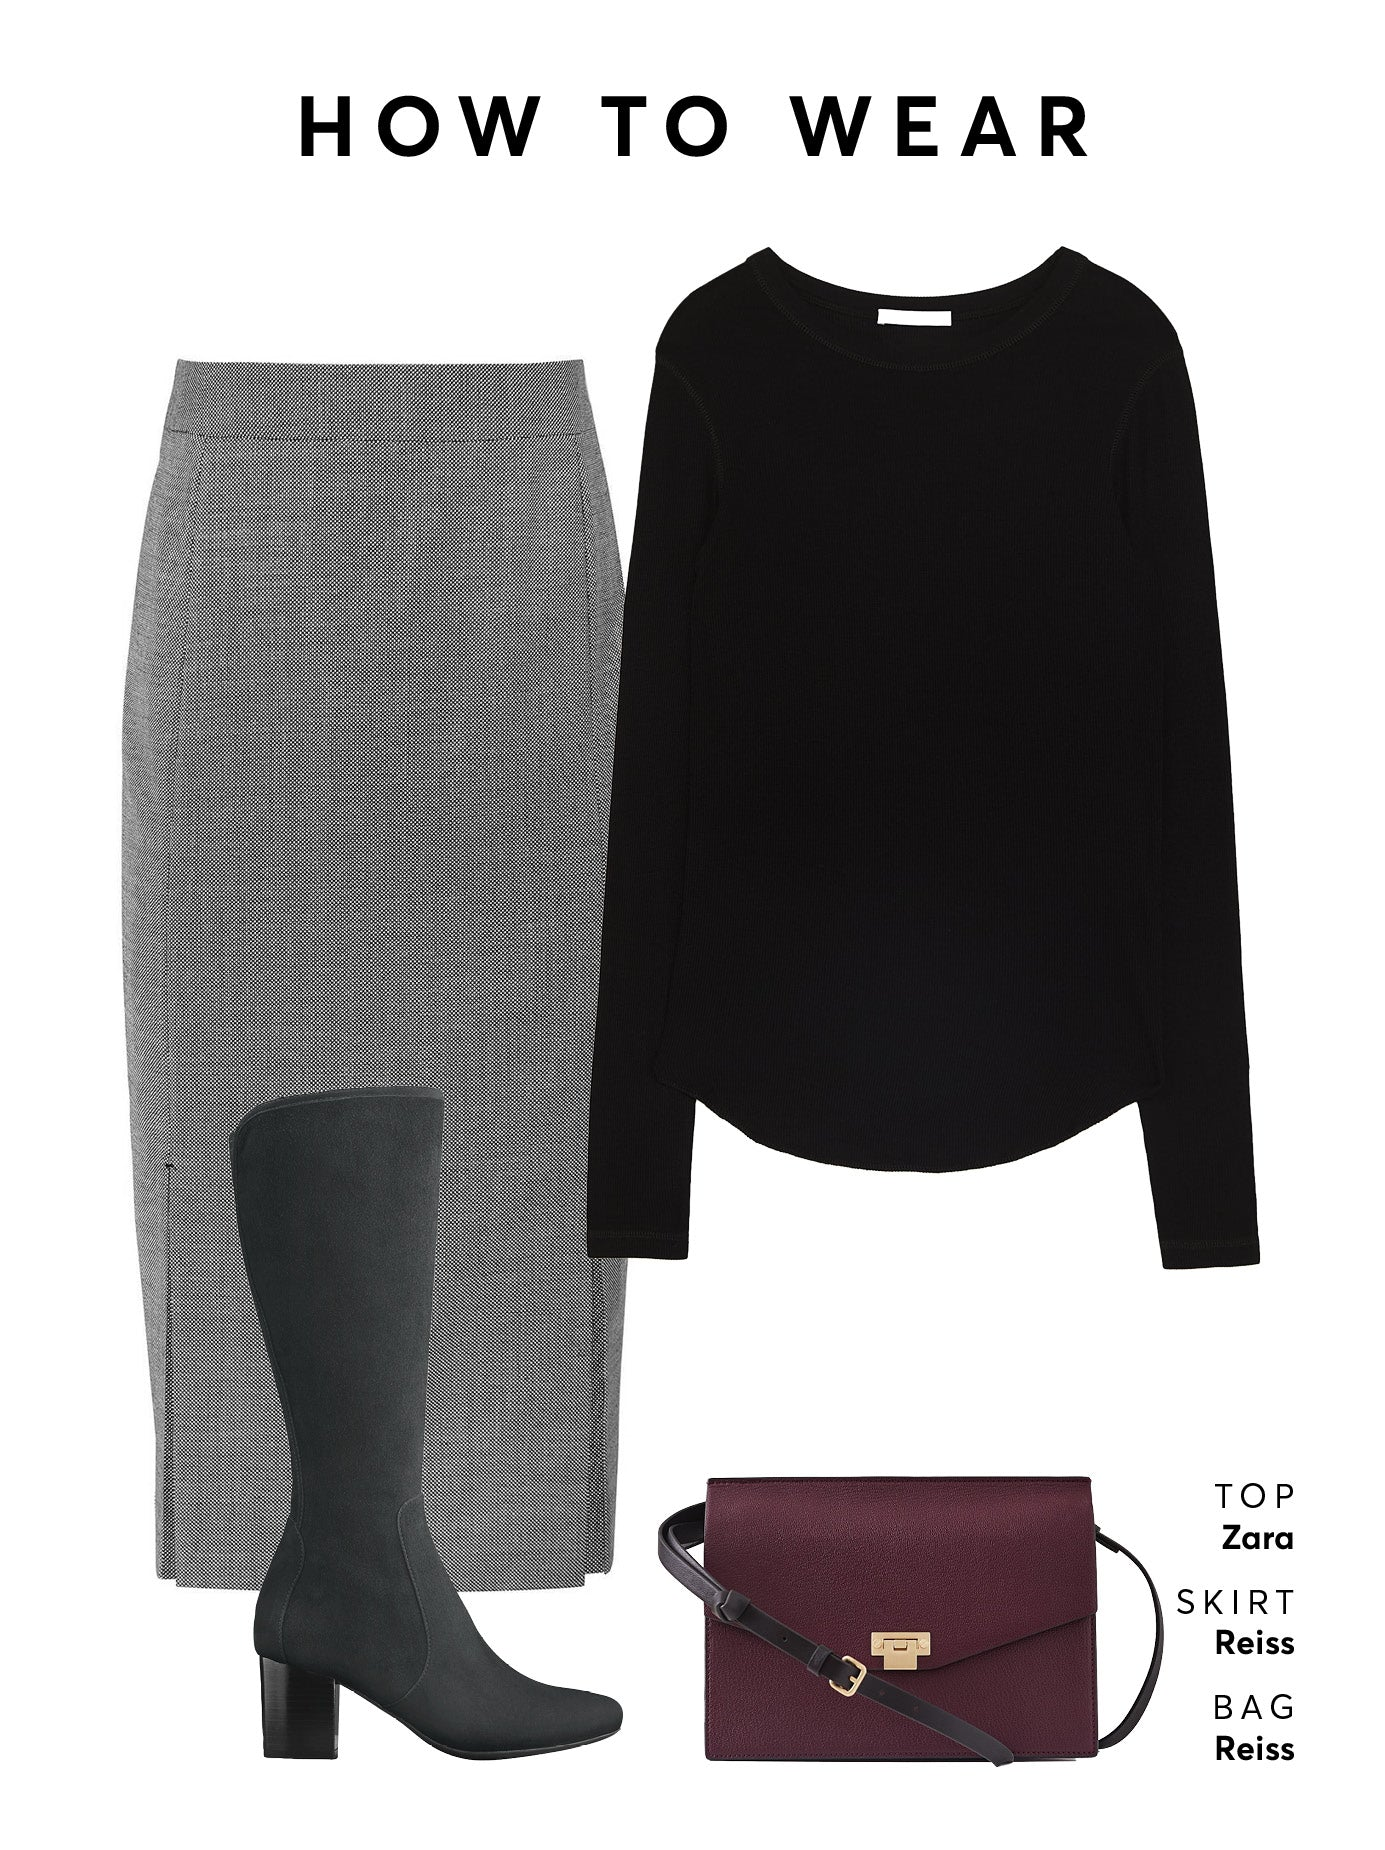 Wear with a pencil skirt and blouse or jumper for effortless workwear.